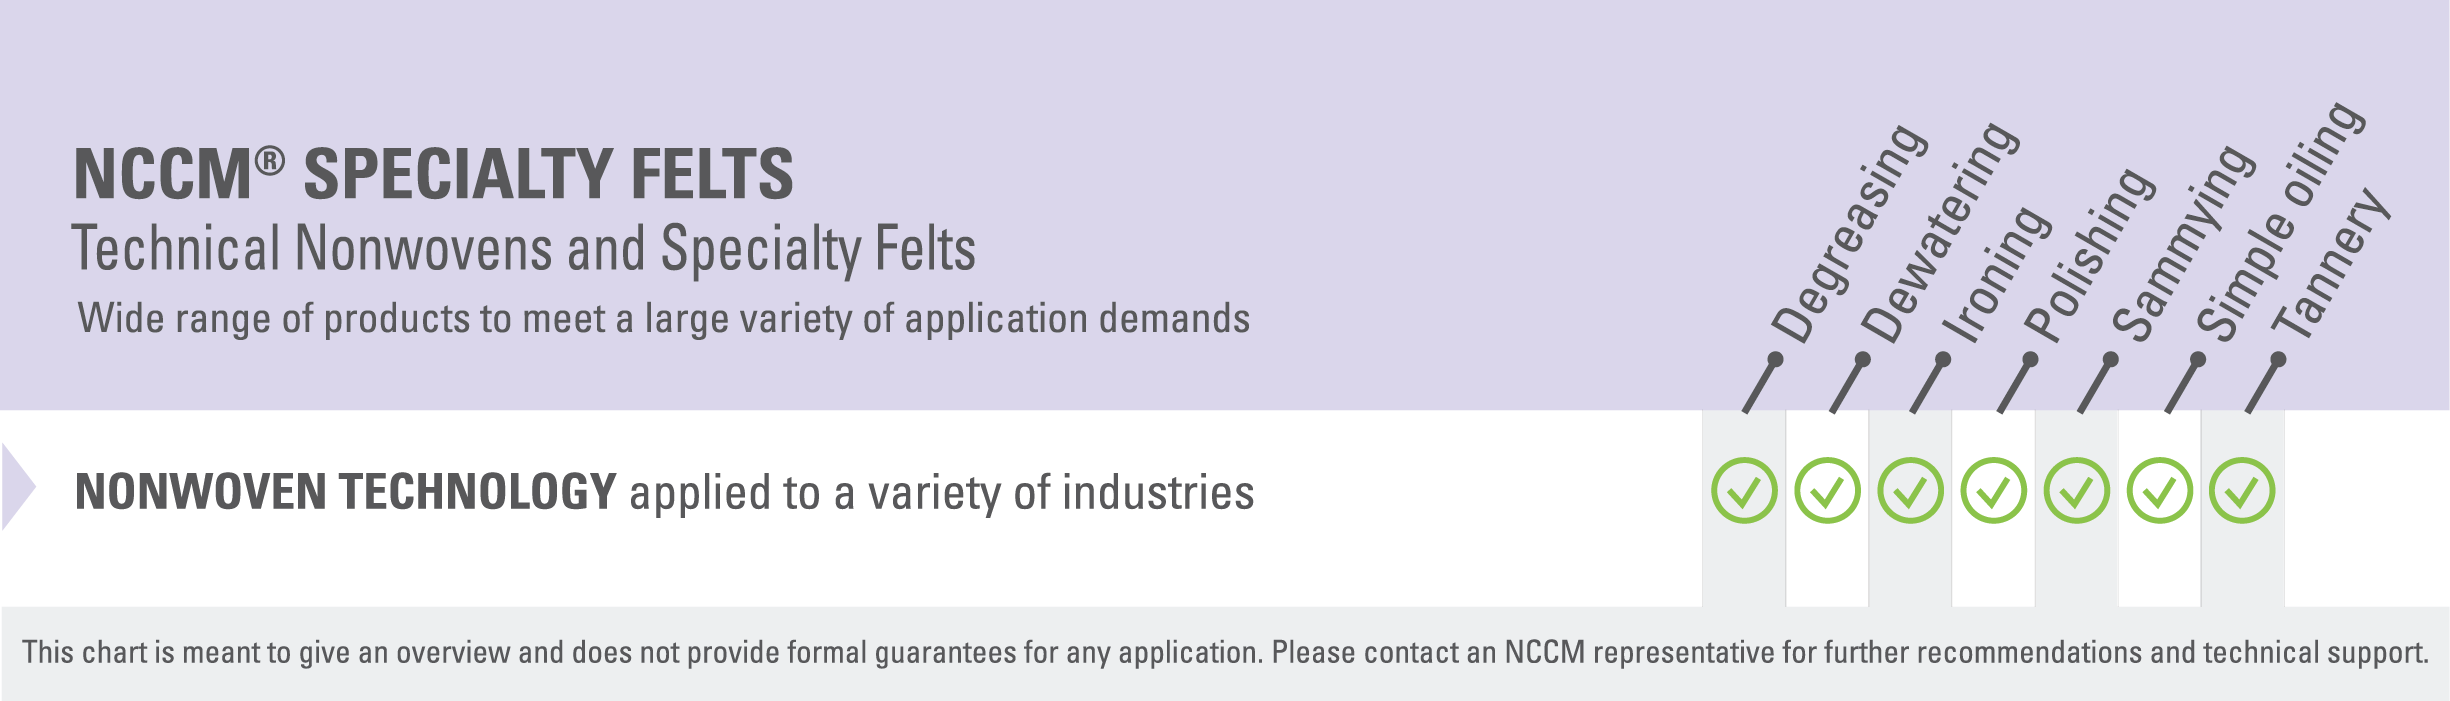 Chart listing various applications, such as degreasing, sammying and simple oiling, in which the NCCM<sup>®</sup> Specialty Felts provide high performance